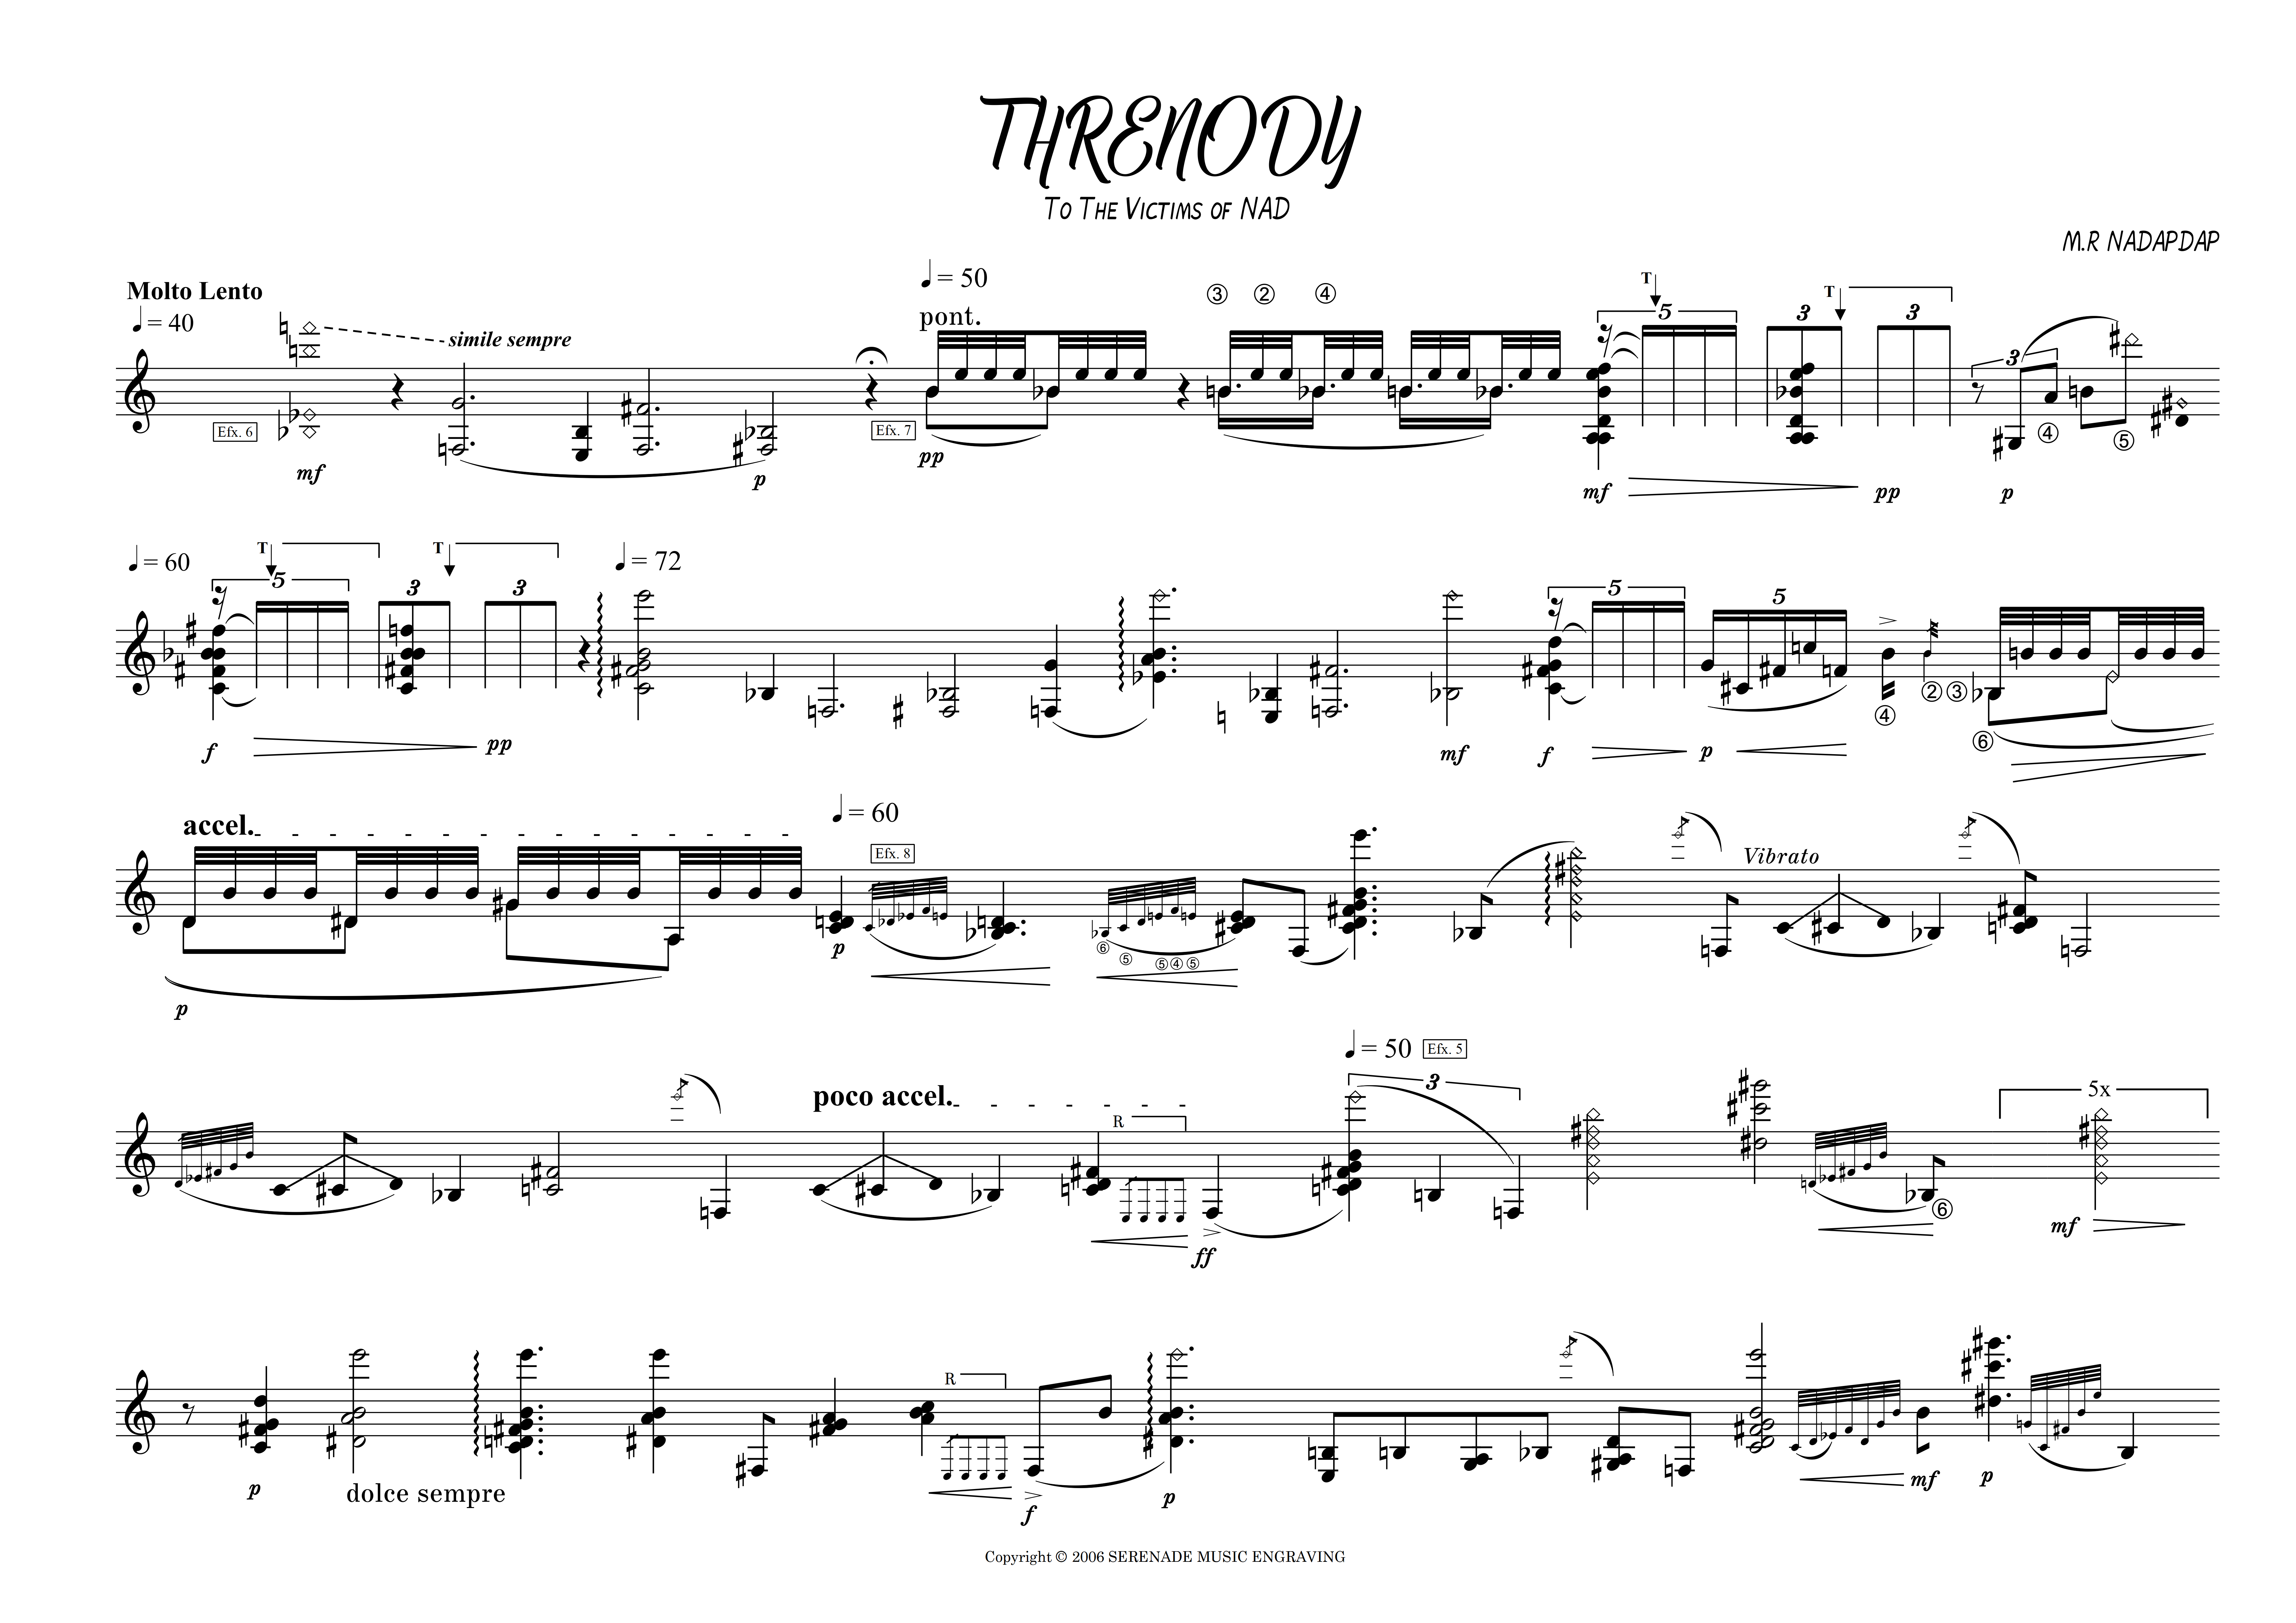 threnody_0001.png